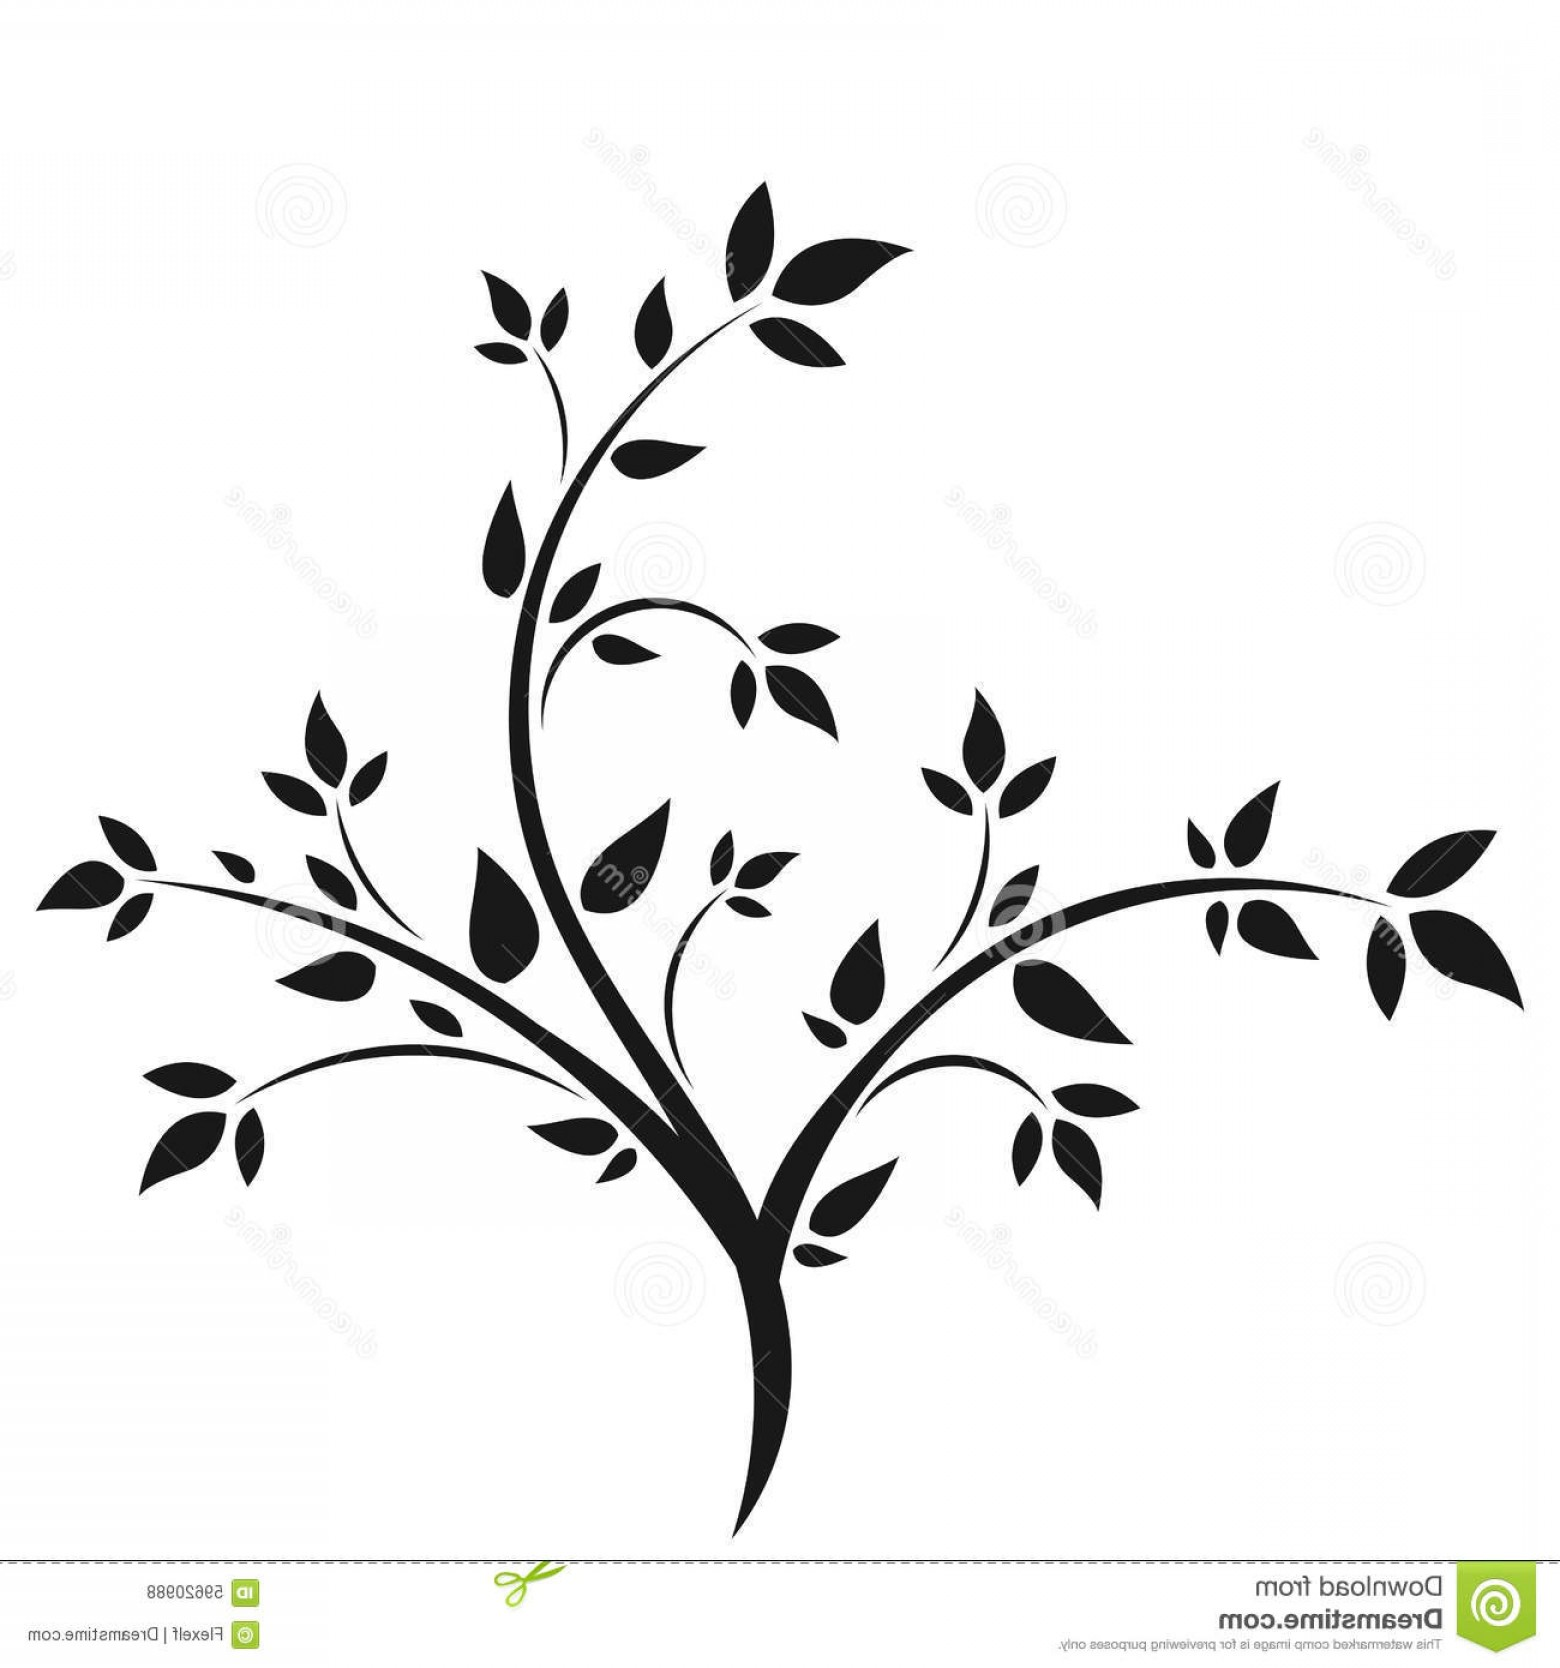 Sapling Vector Tree Silhouette Art: Stock Illustration Silhouette Young Tree Abstract Illustration Image